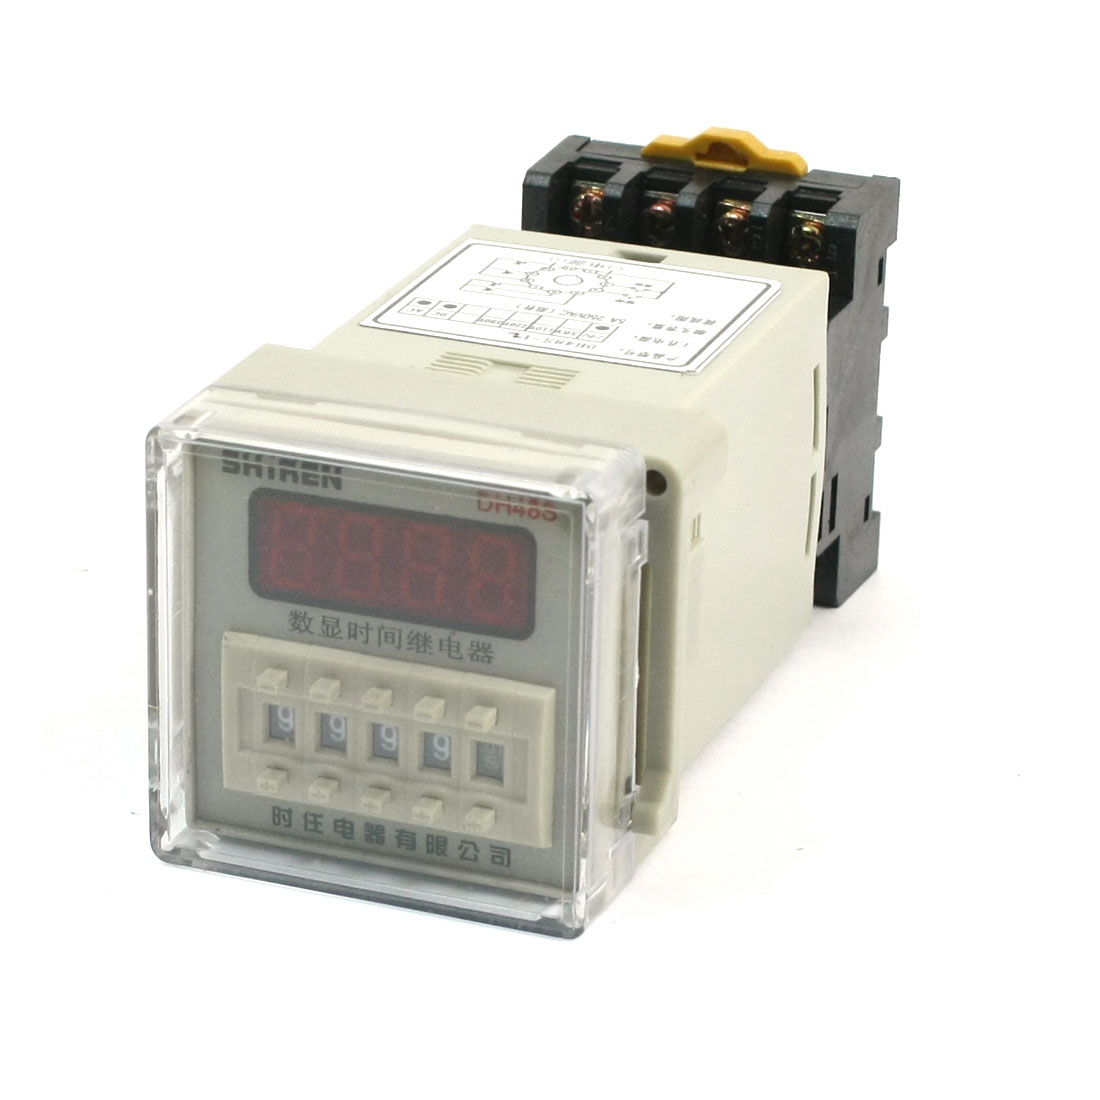 AC/DC 12V 0.01s-9999h 35mm DIN Rail Mount Socket Panel Digit Time Delay Timer